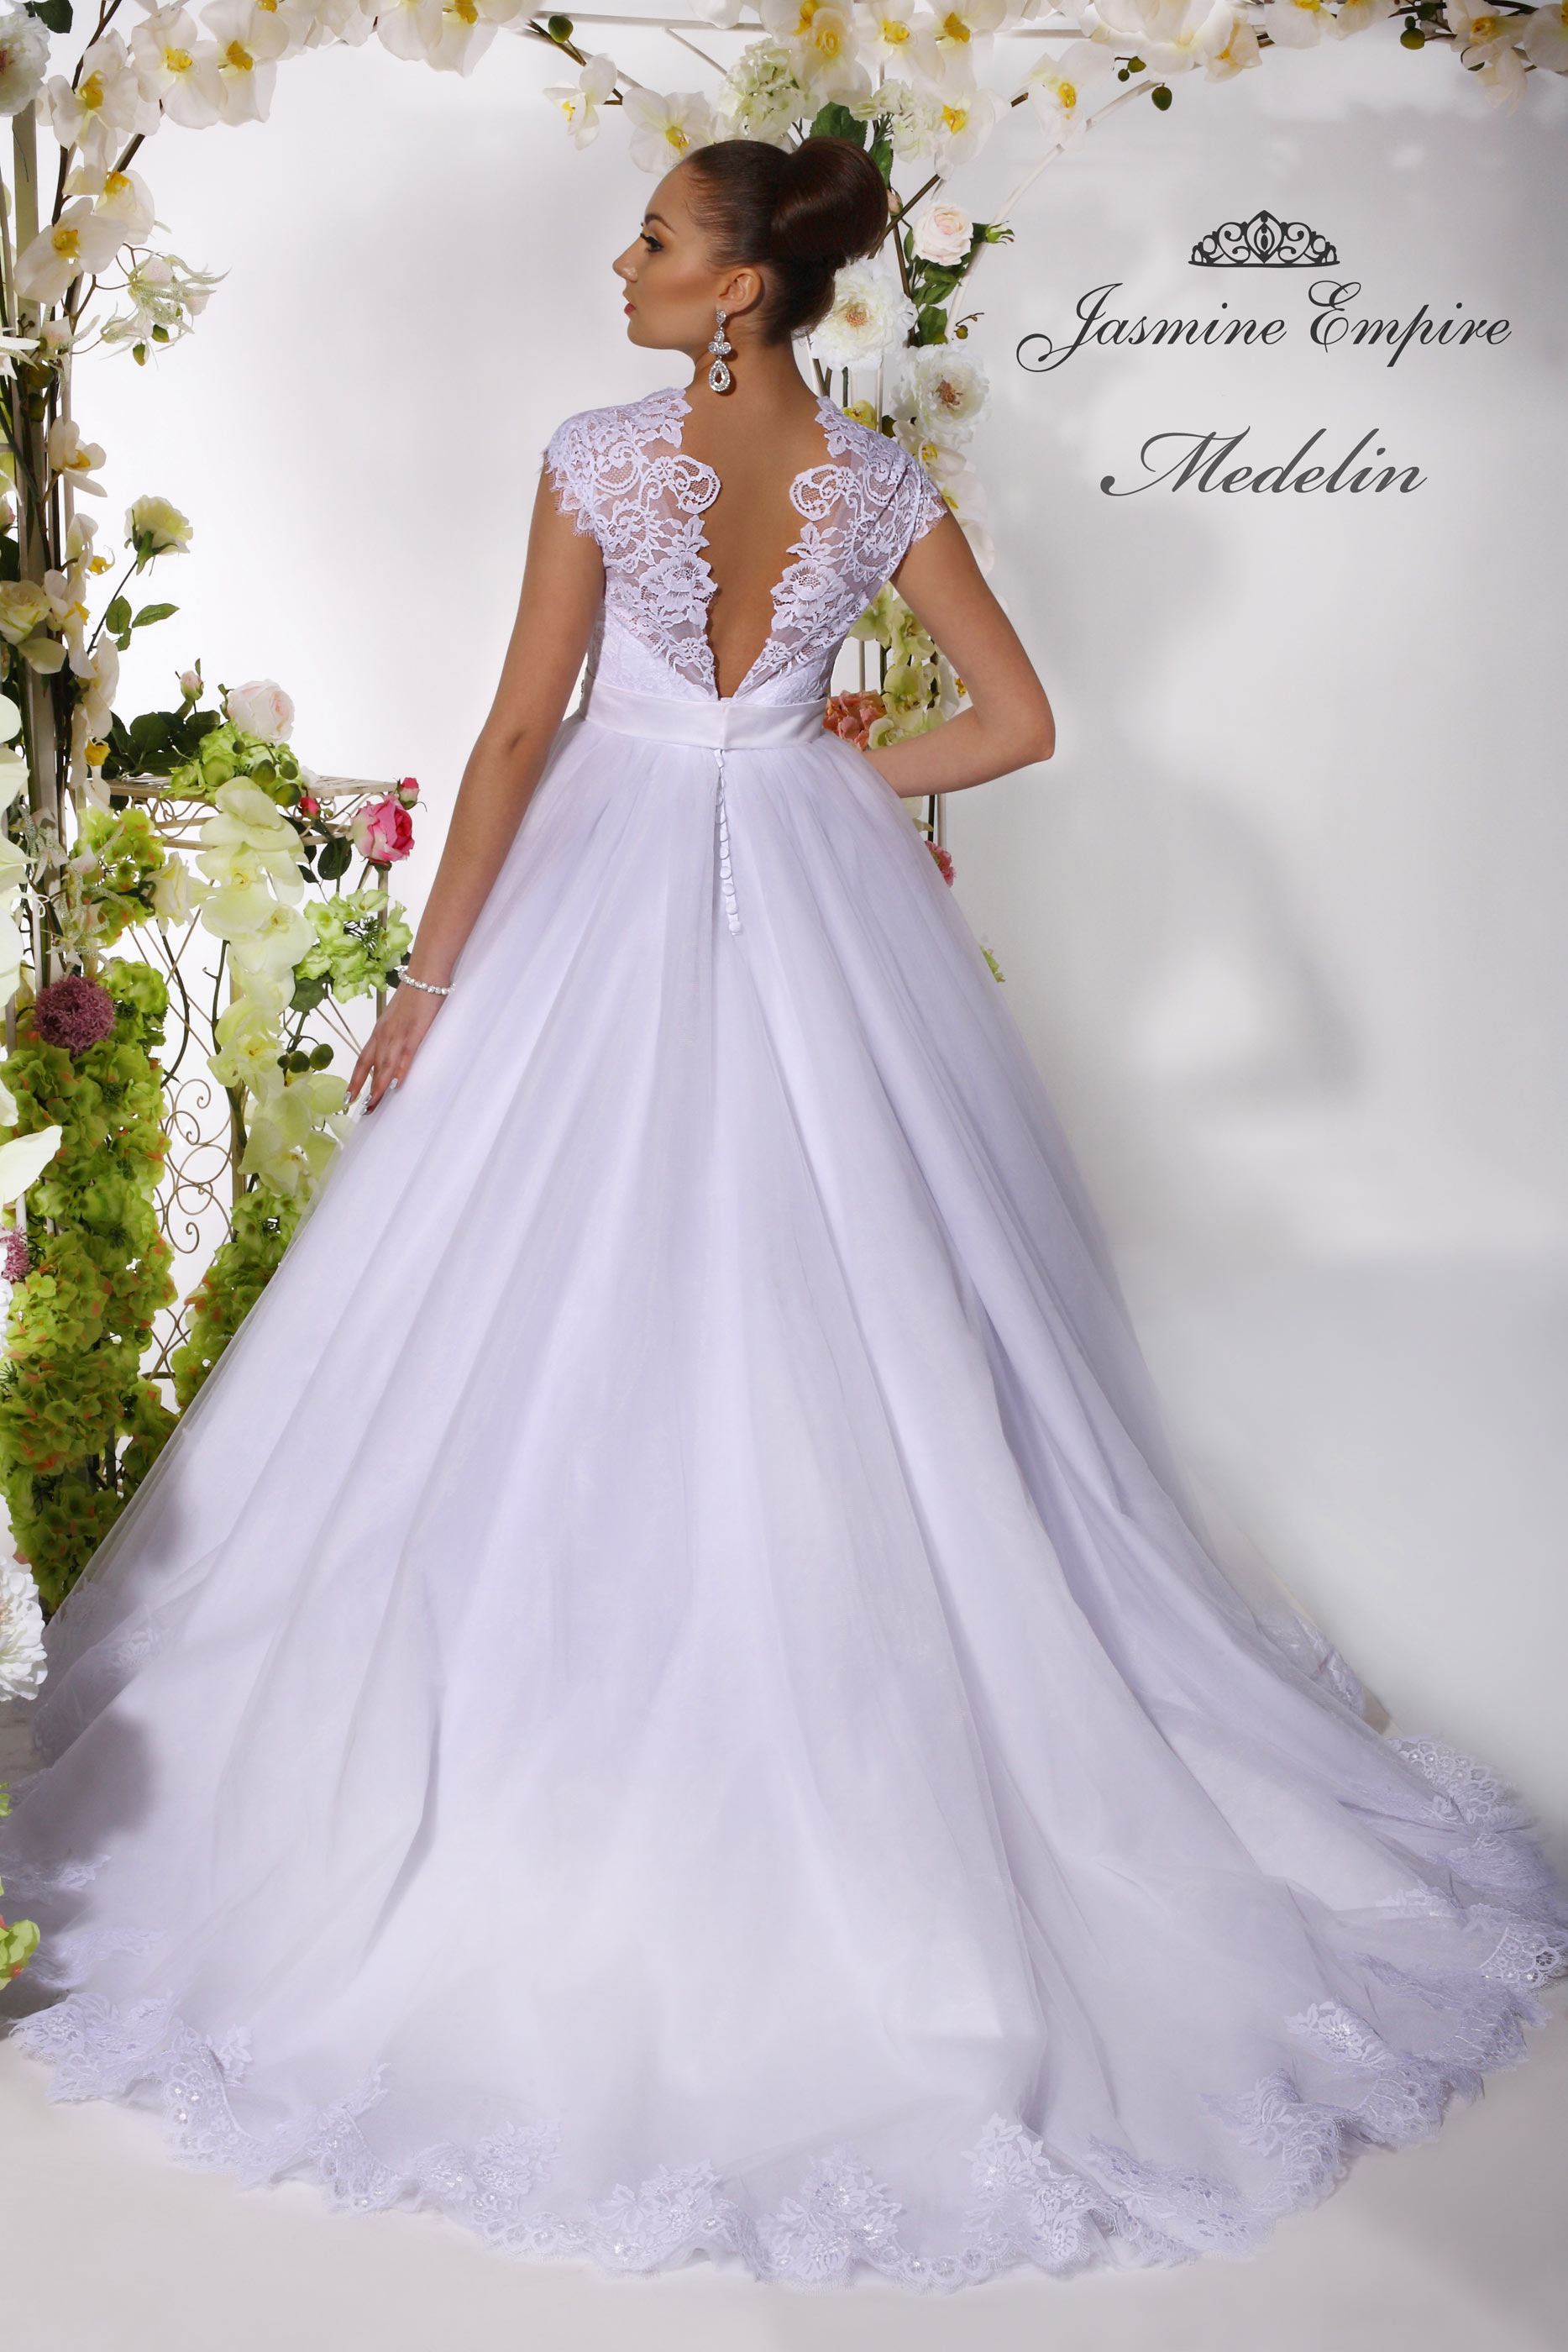 Wedding Dress Medelin  1